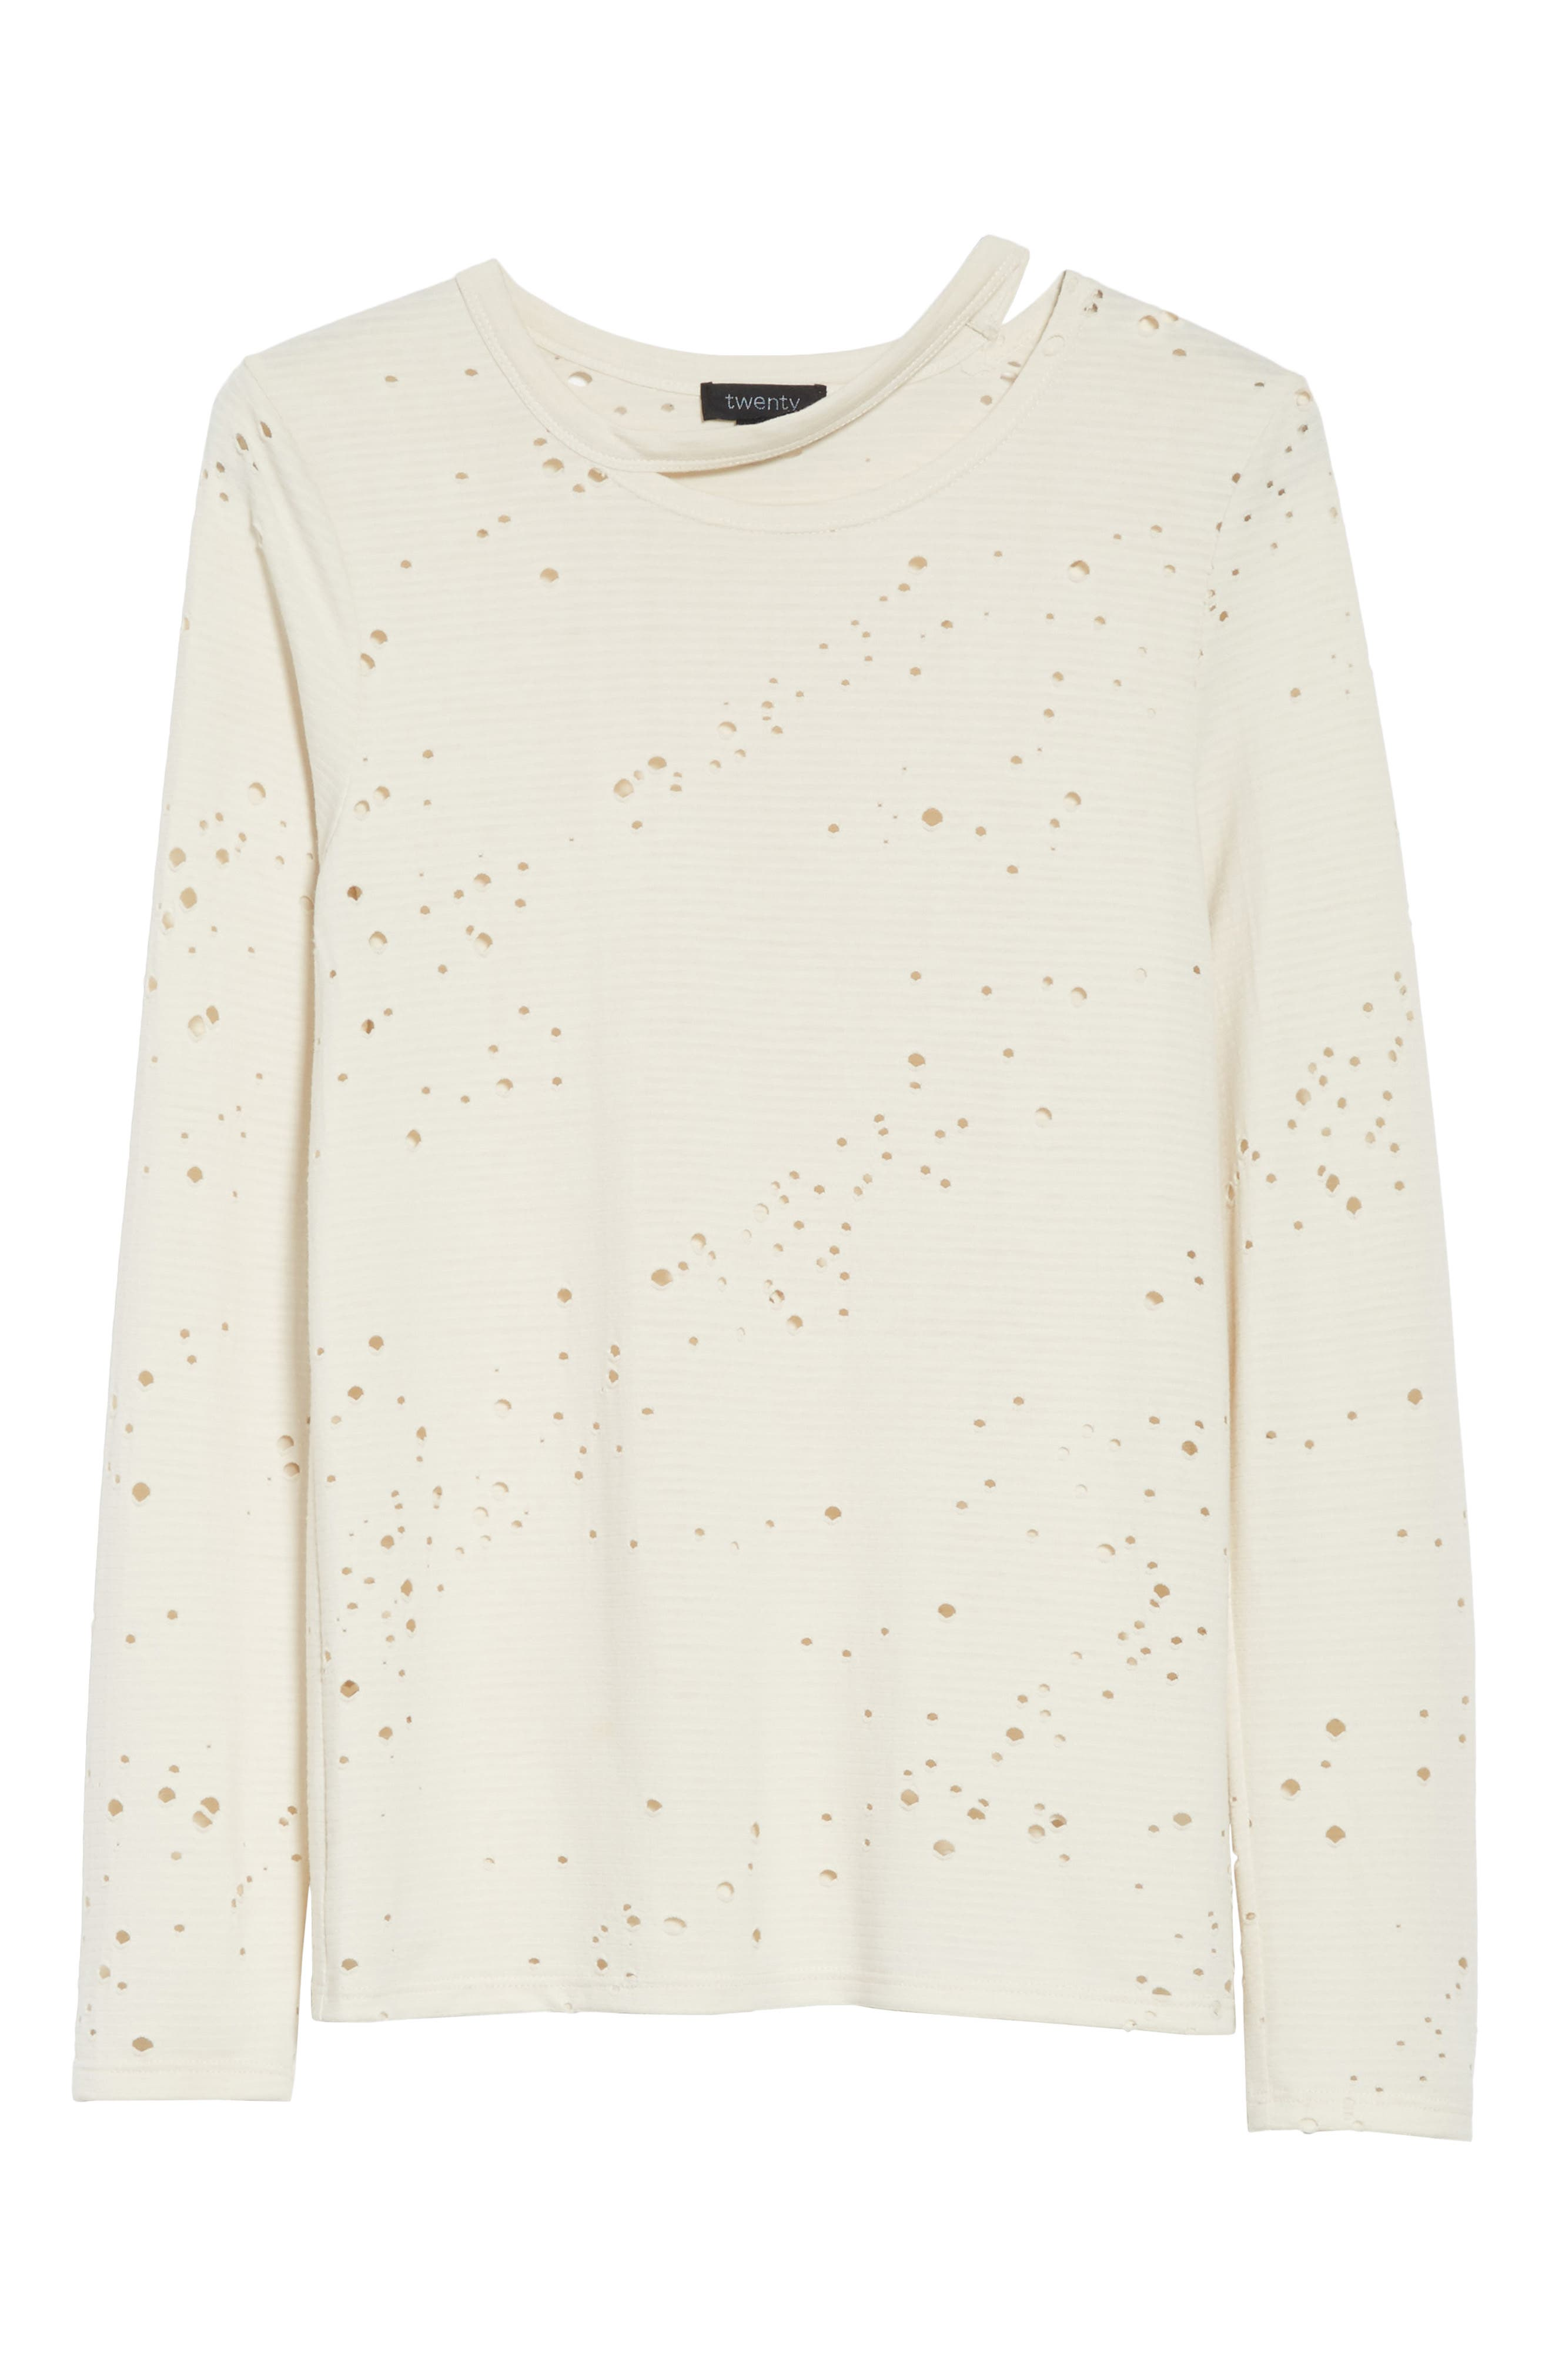 Waverly Perforated Tee,                             Alternate thumbnail 6, color,                             Eggshell